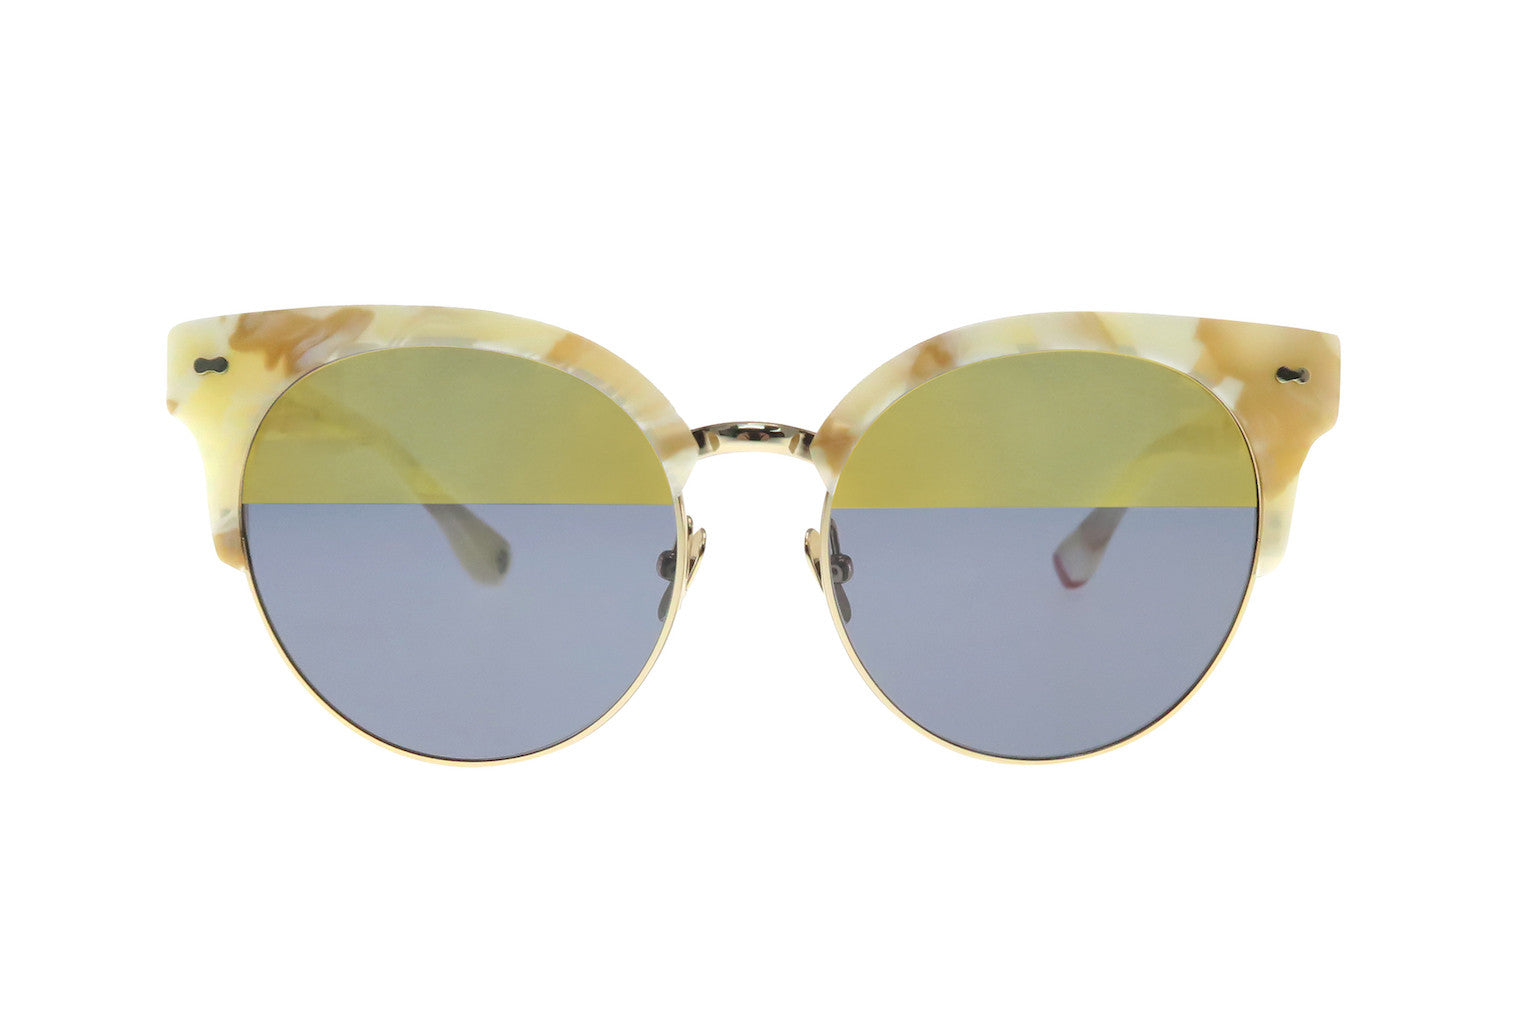 Pico 122 - Peppertint - Designer sunglasses